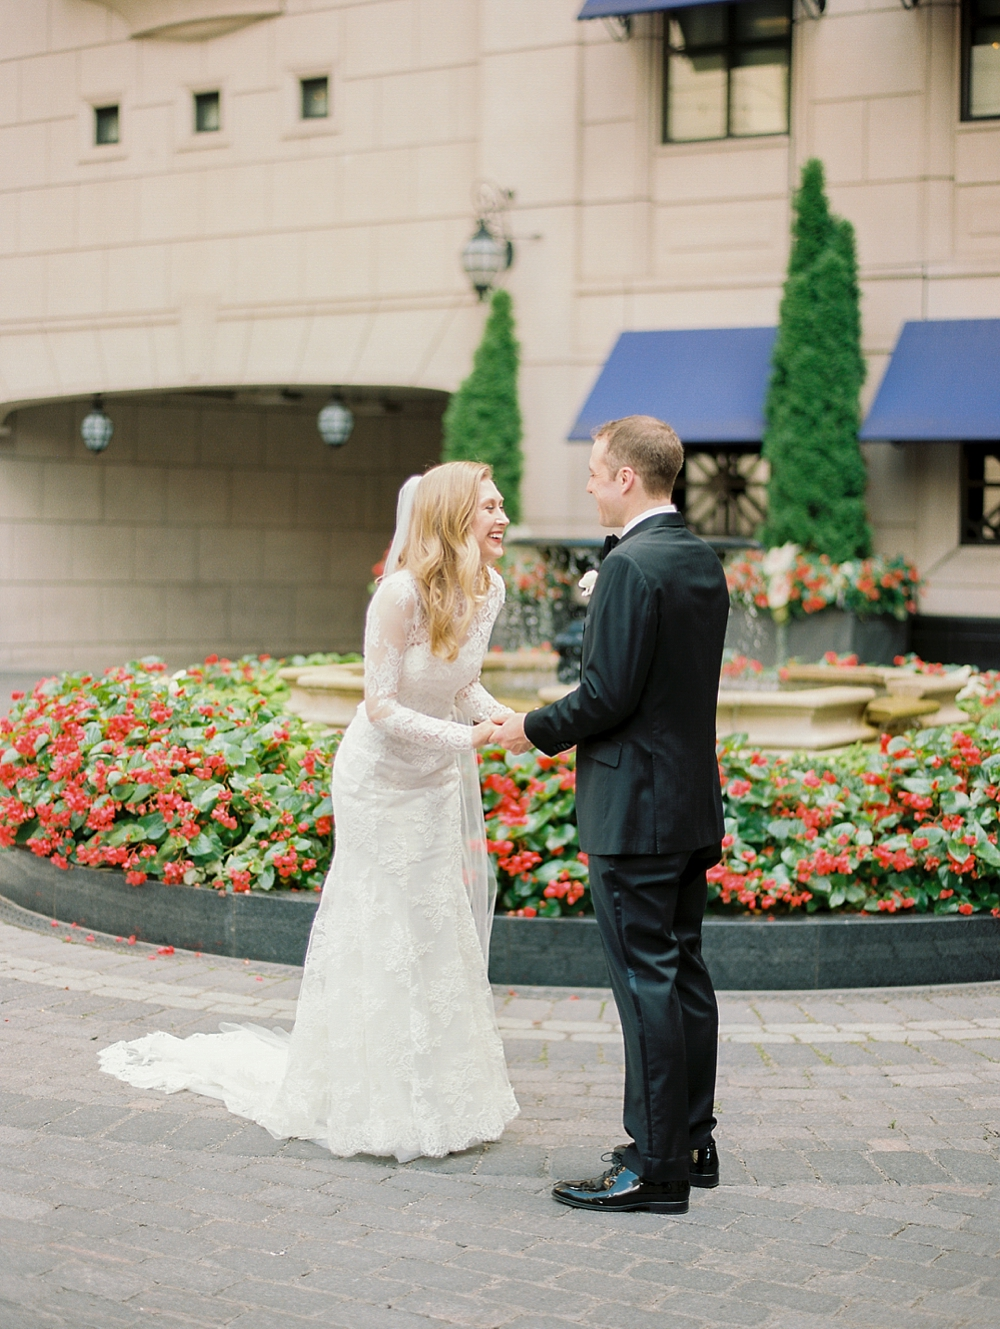 kristin-la-voie-photography-chicago-wedding-photographer-147